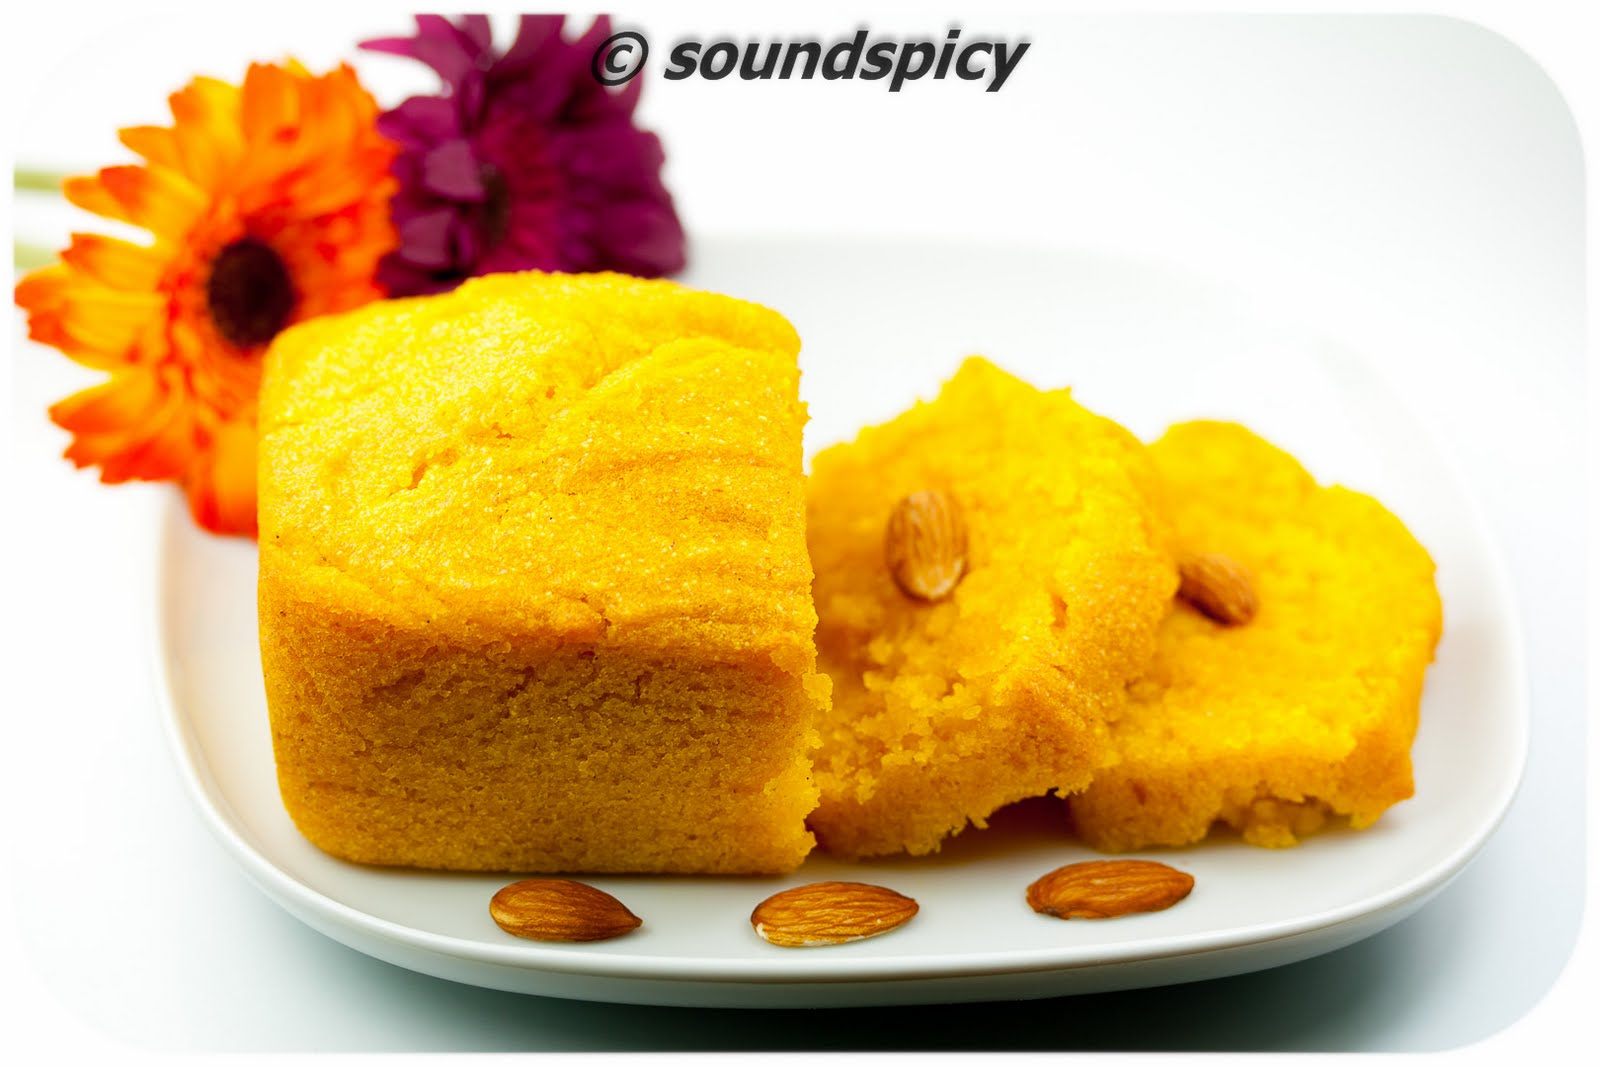 Images For Mango Cake : Sooji Mango Cake Sound spicy